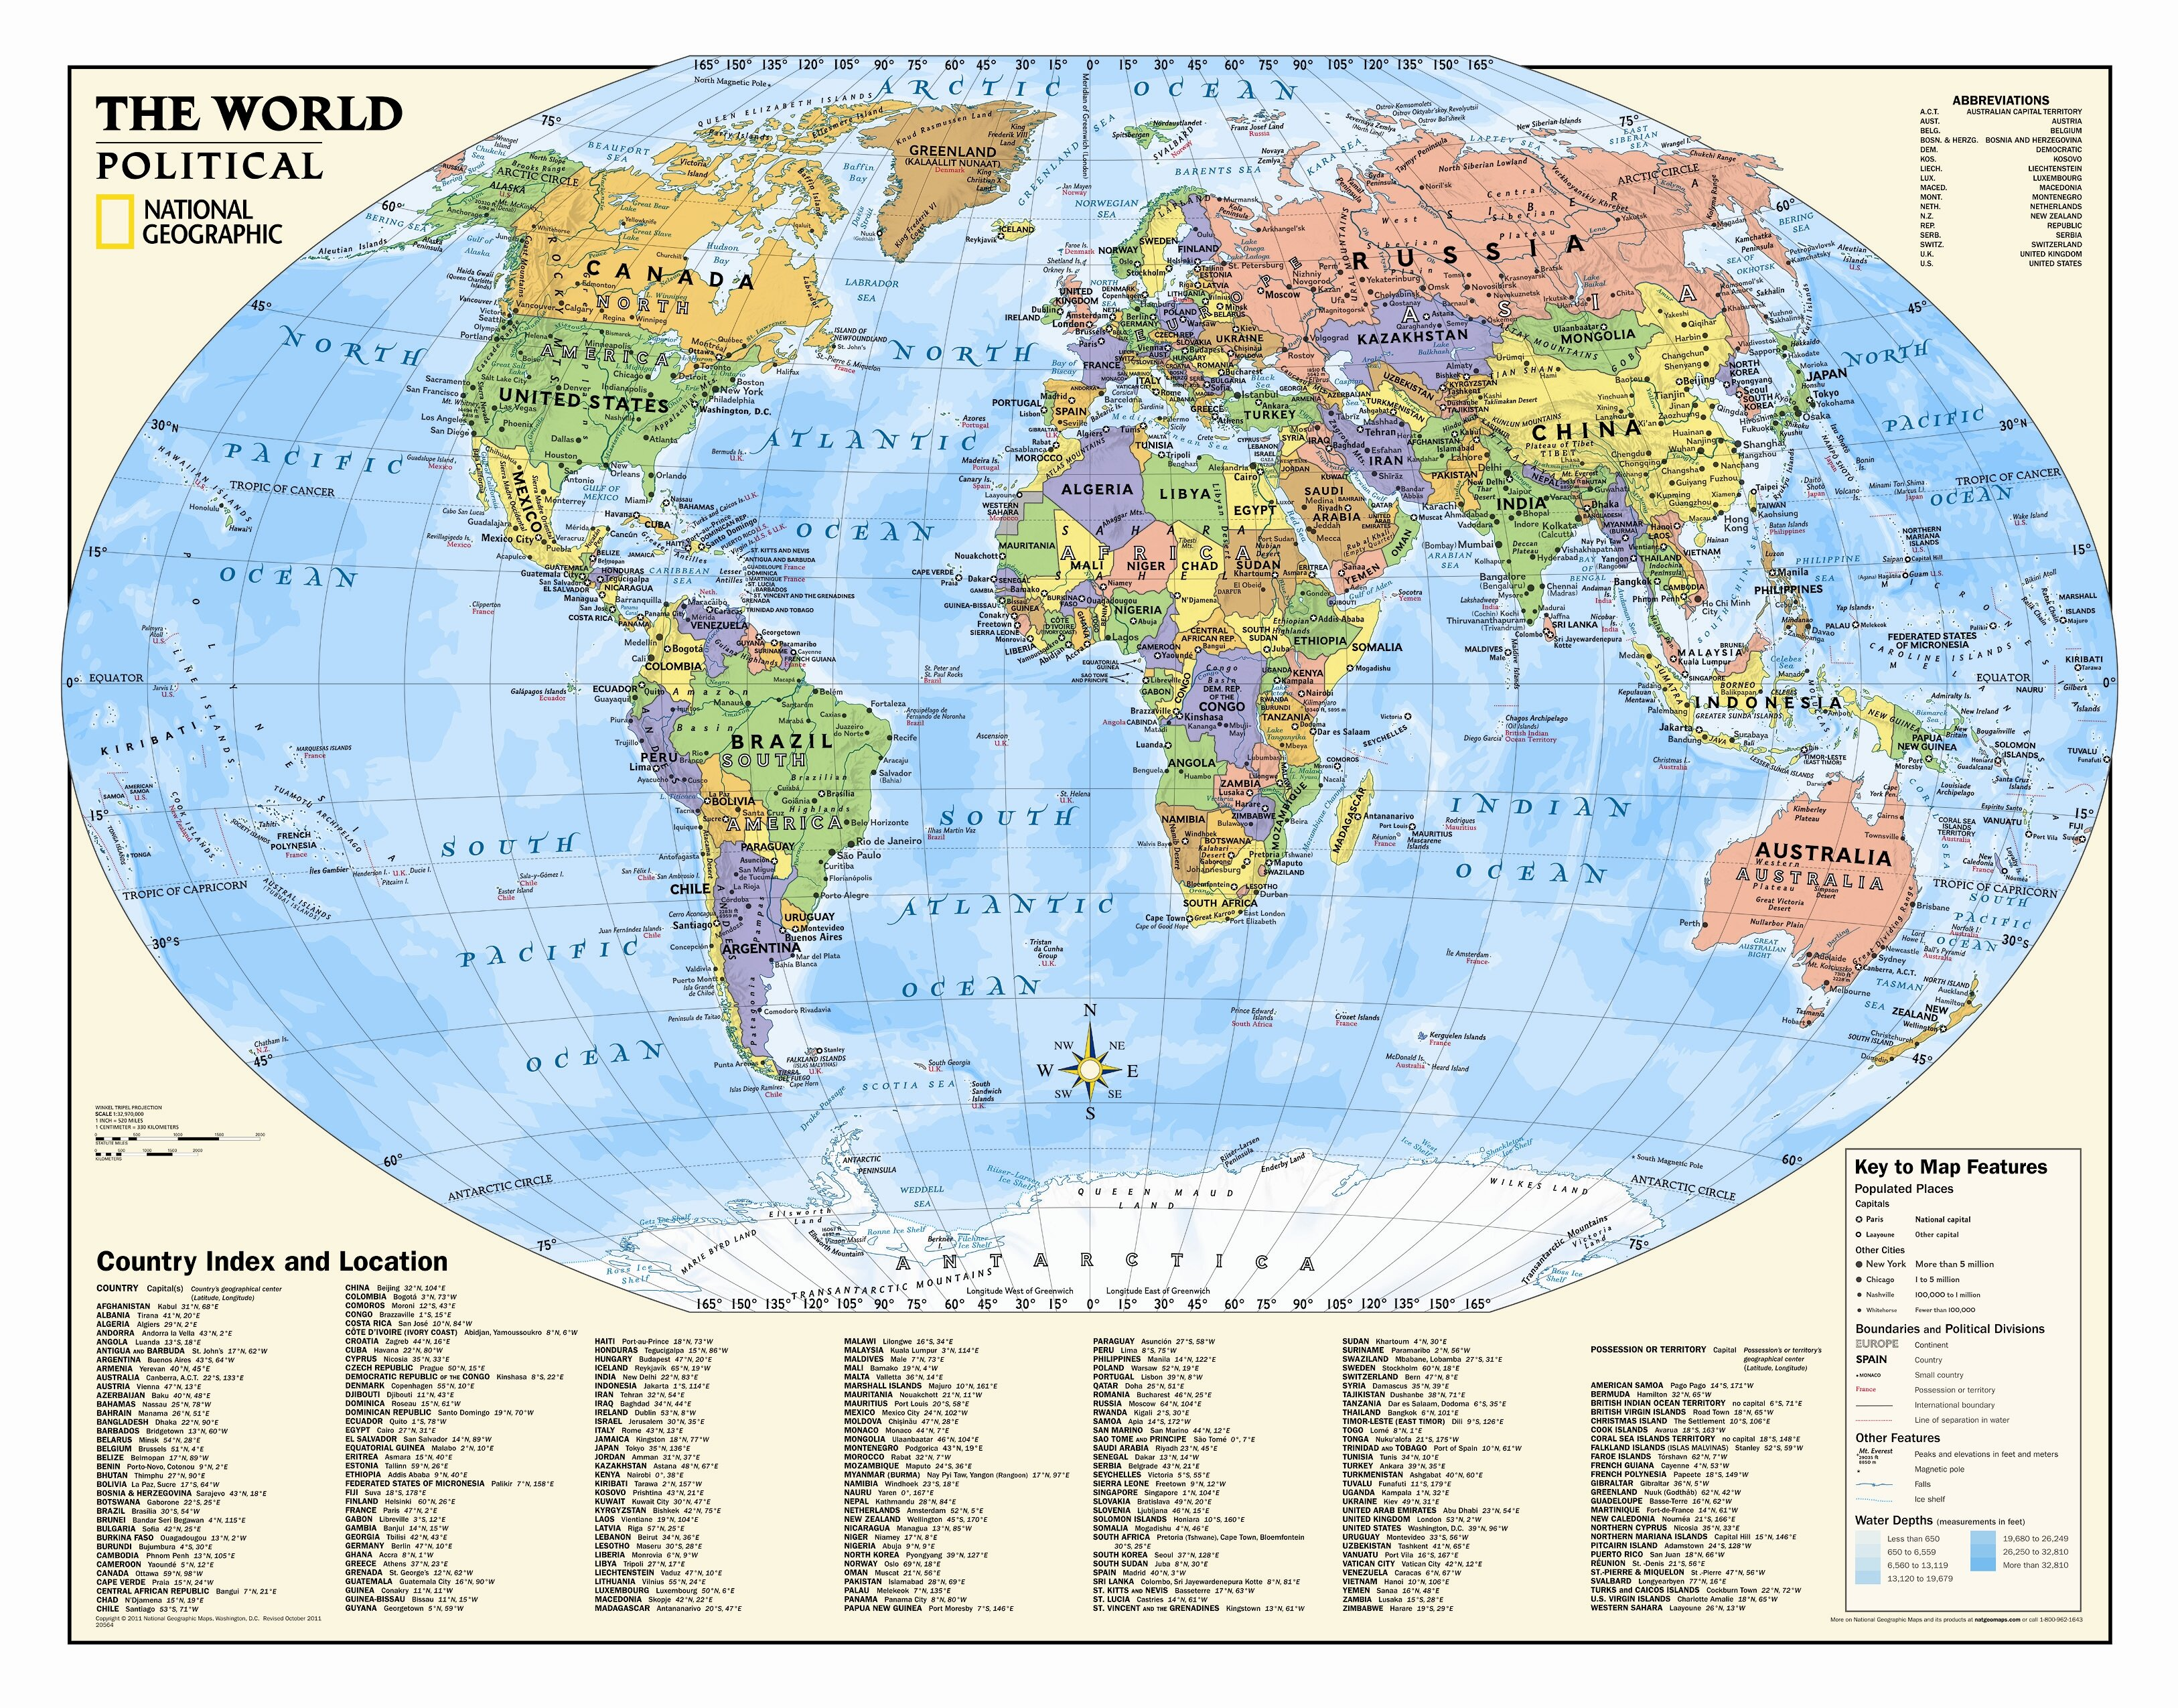 Polictical World Map.National Geographic Maps Kids Political World Wall Map Grades 4 12